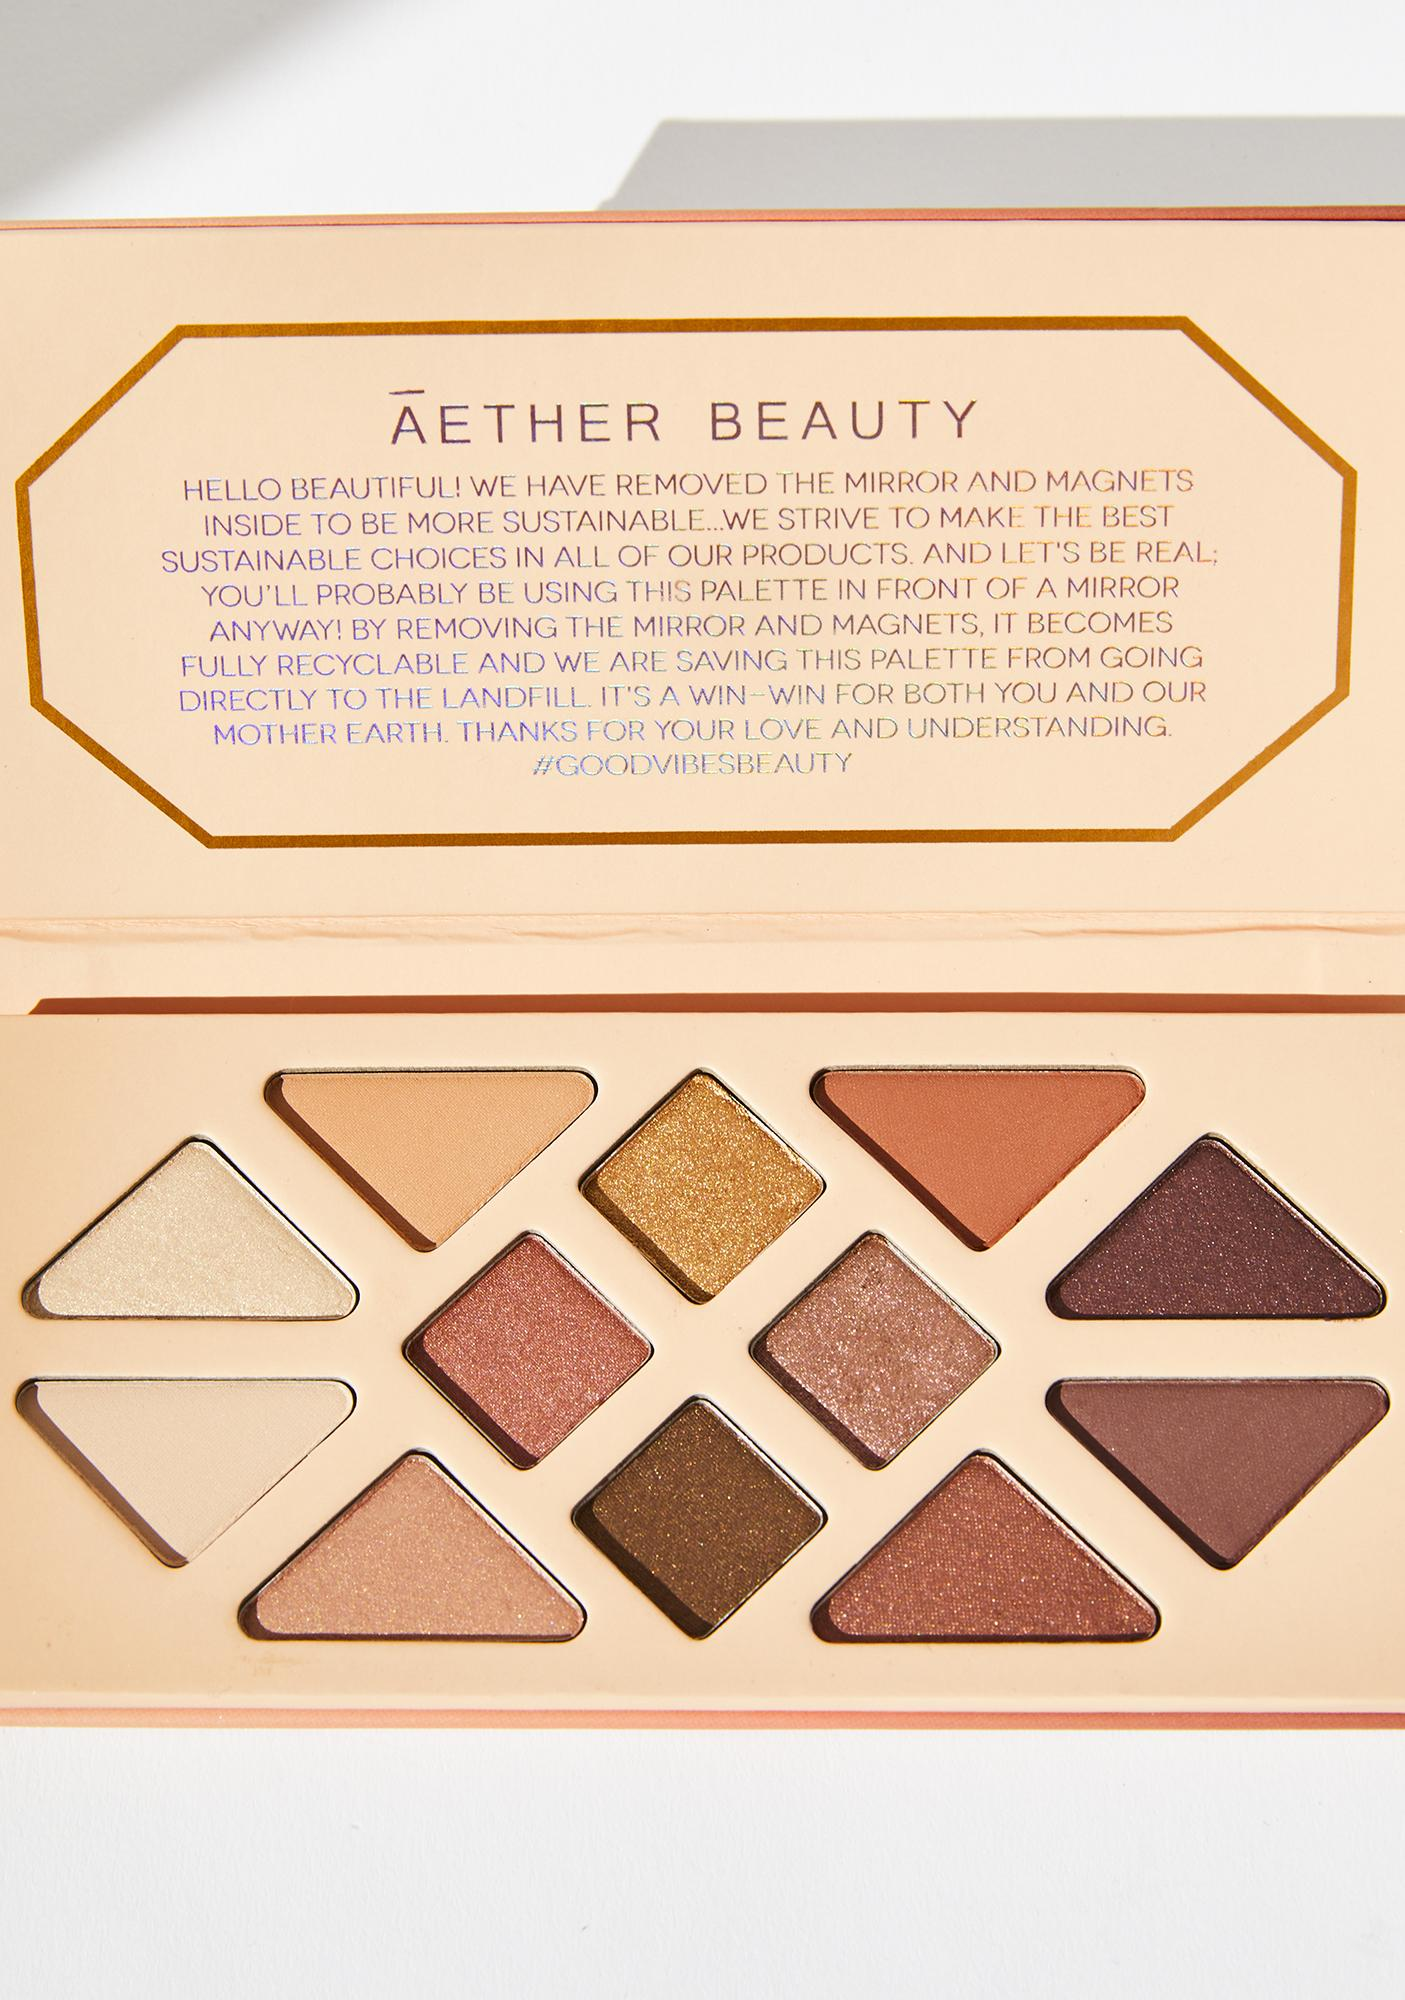 Aether Beauty Summer Solstice Crystal Charged Eyeshadow Palette